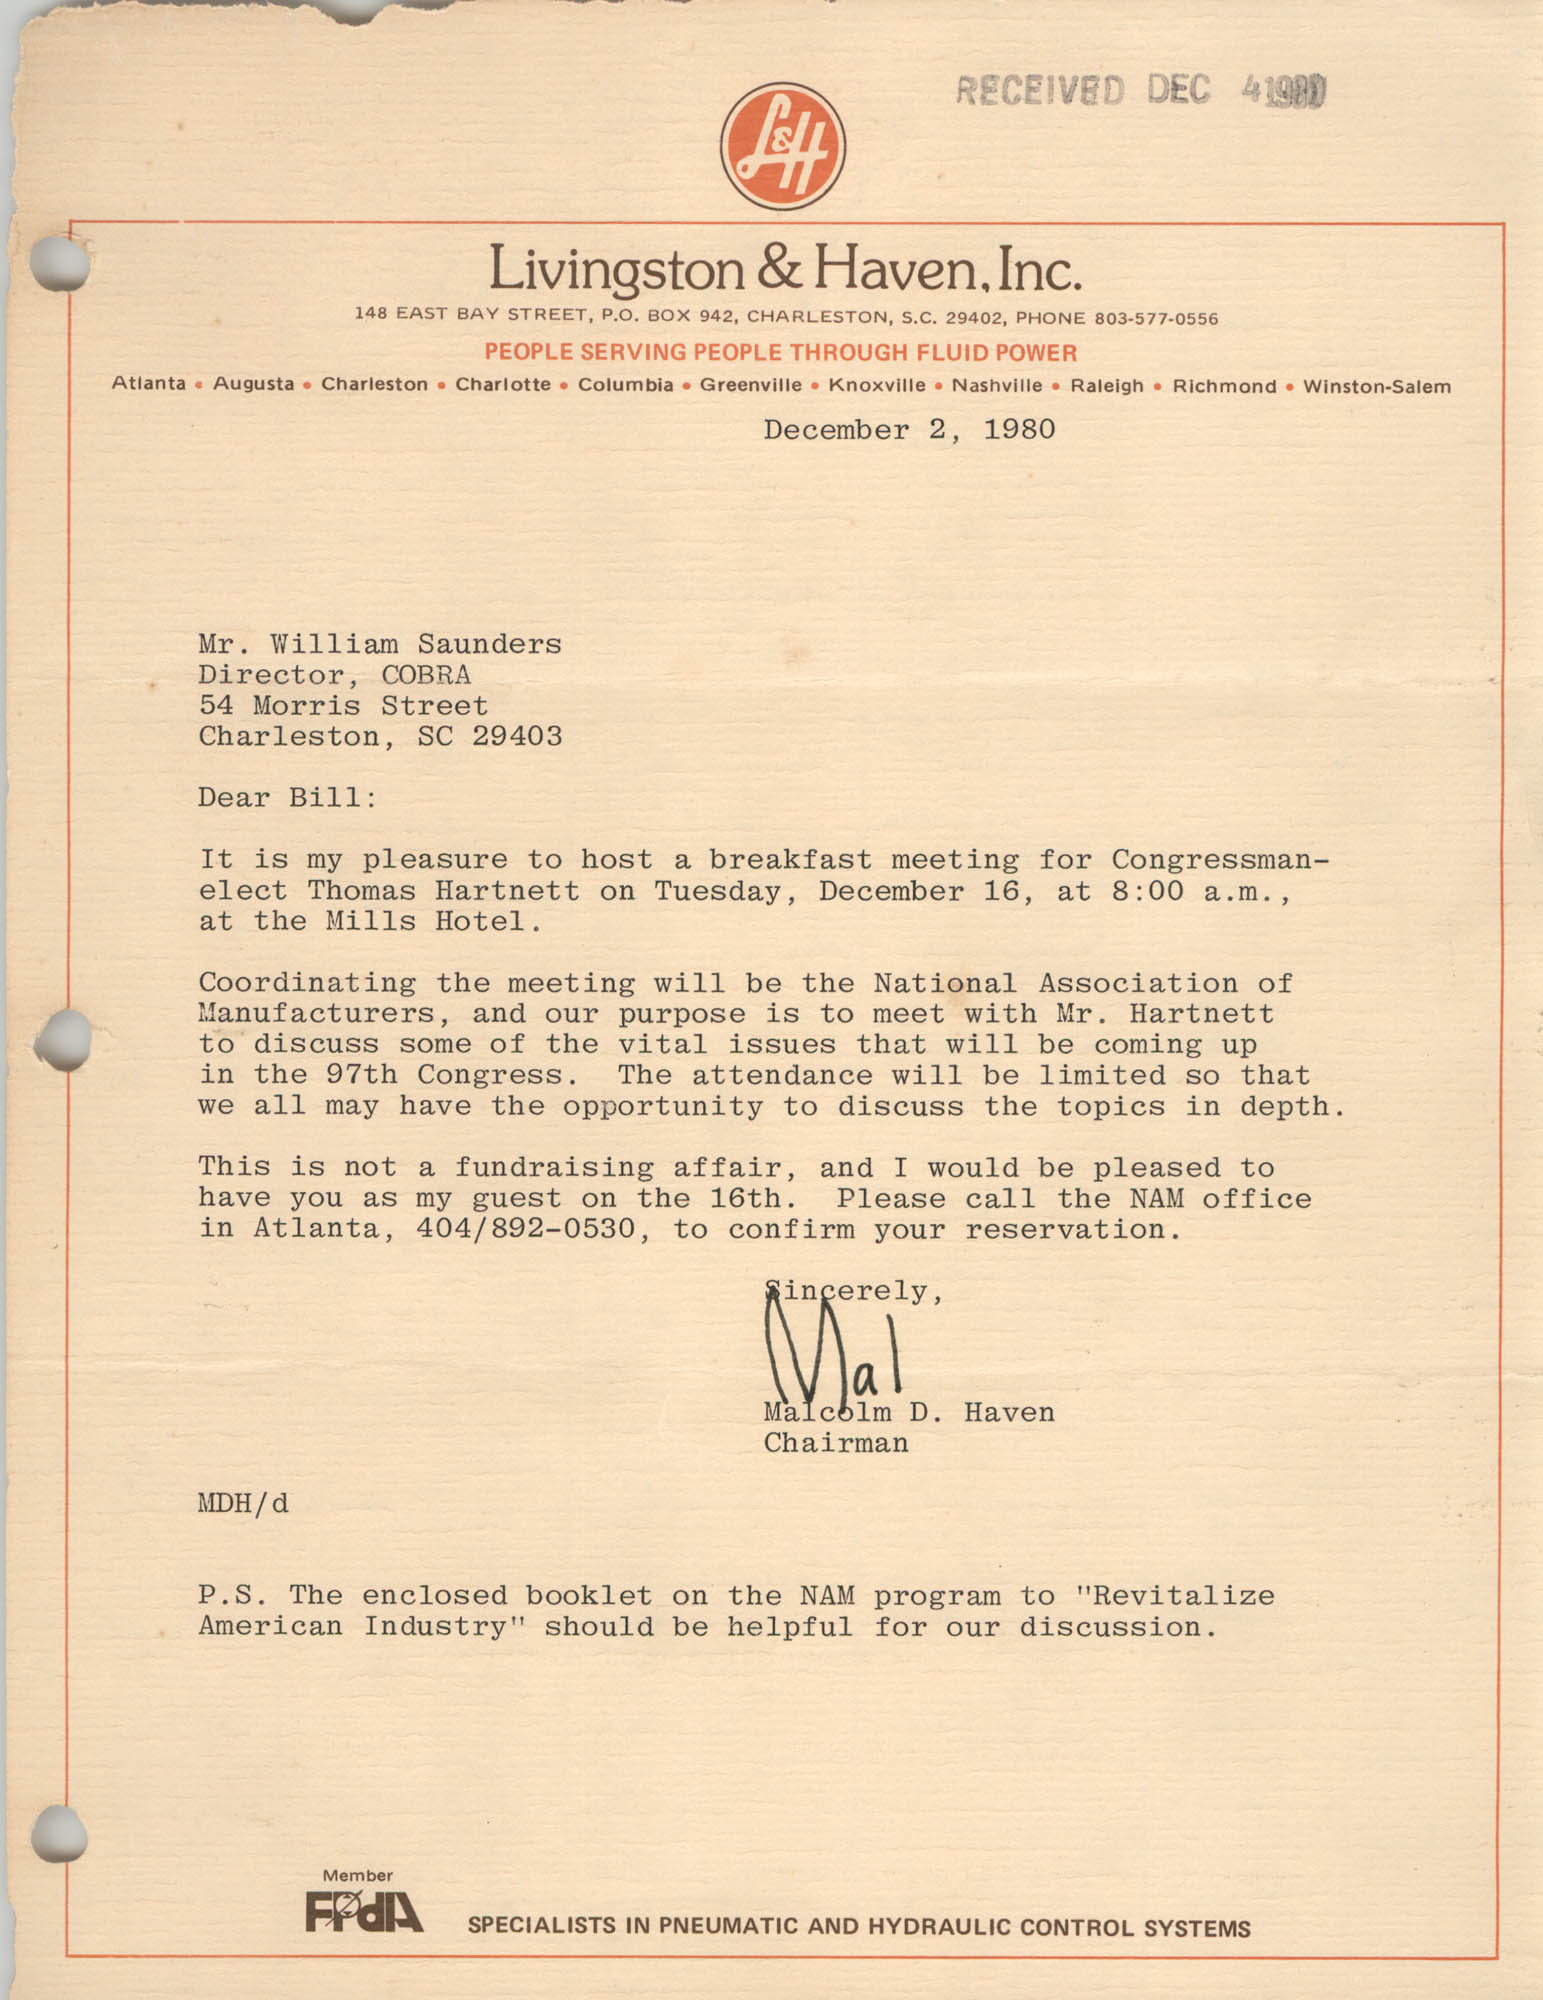 Letter from Malcolm D. Haven to William Saunders, December 2, 1980